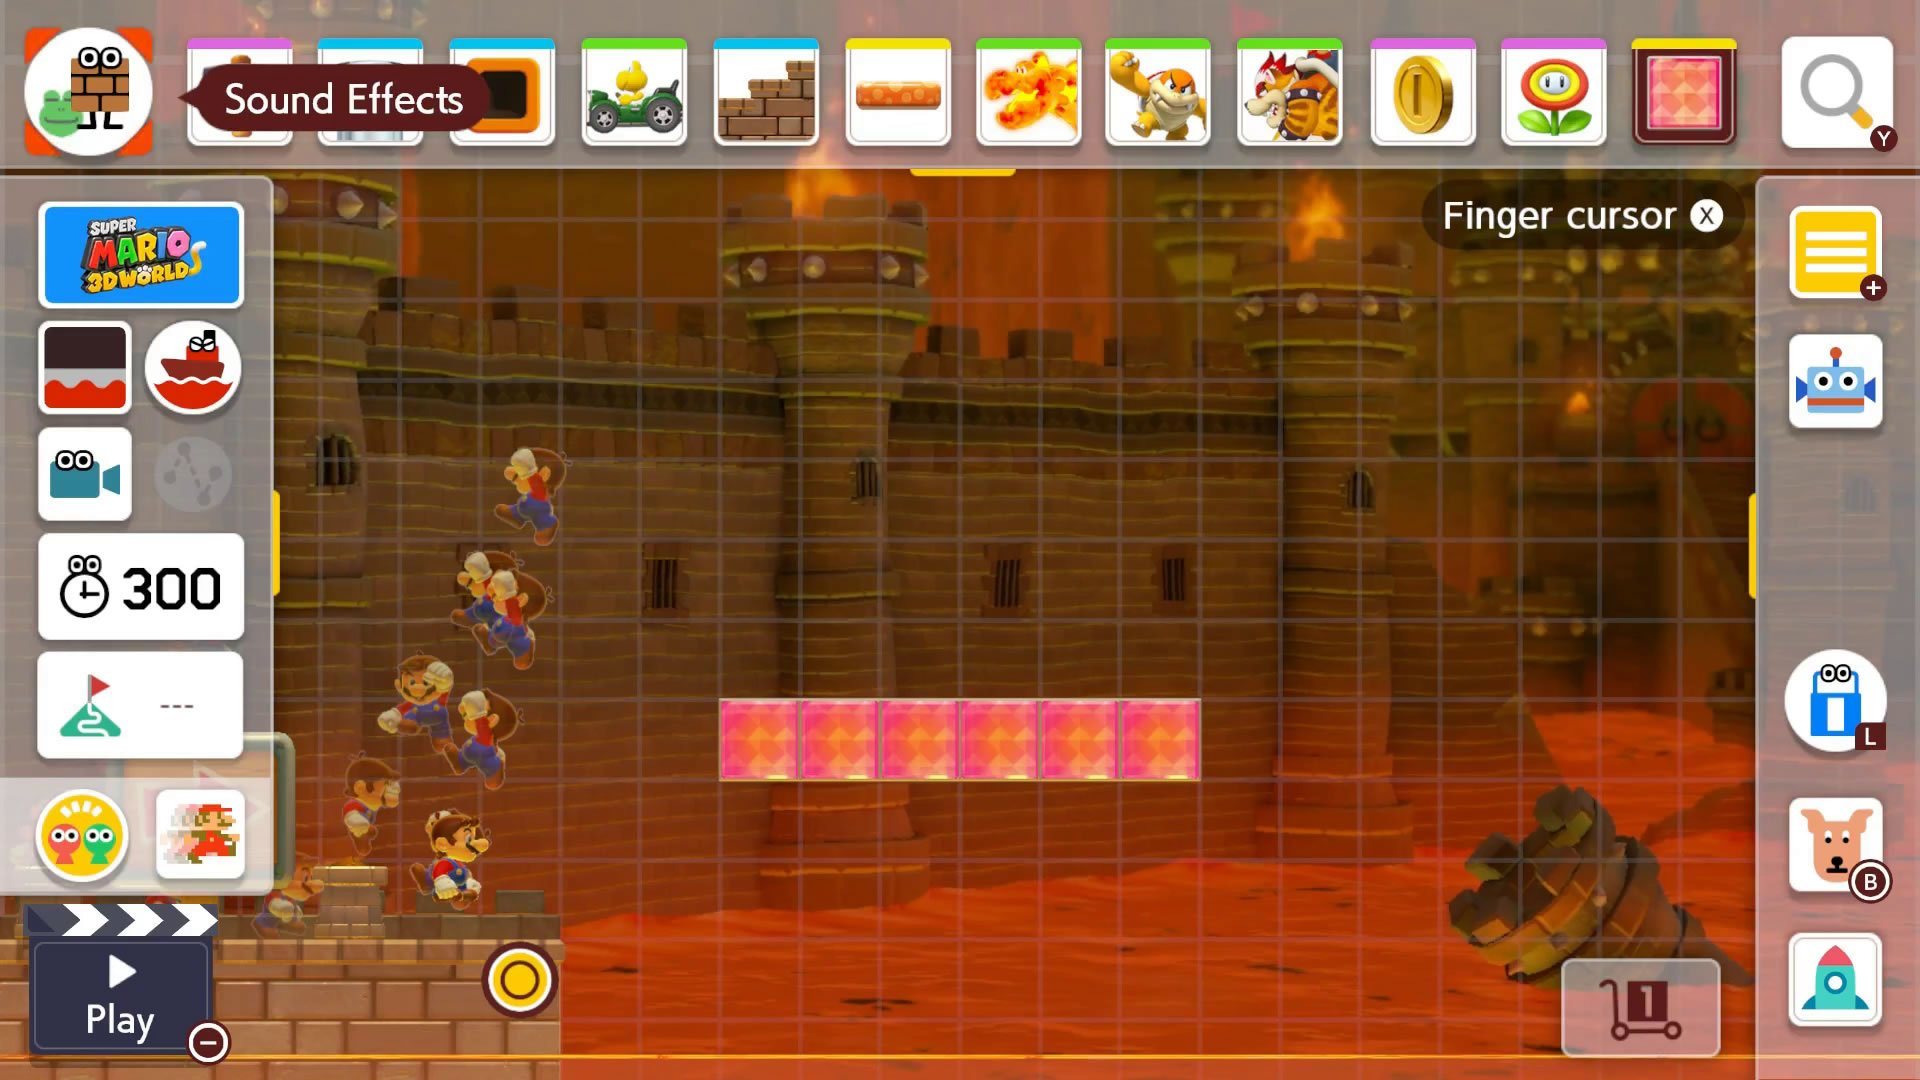 How to add sound effects in Super Mario Maker 2 Course Maker - Sound effects menu